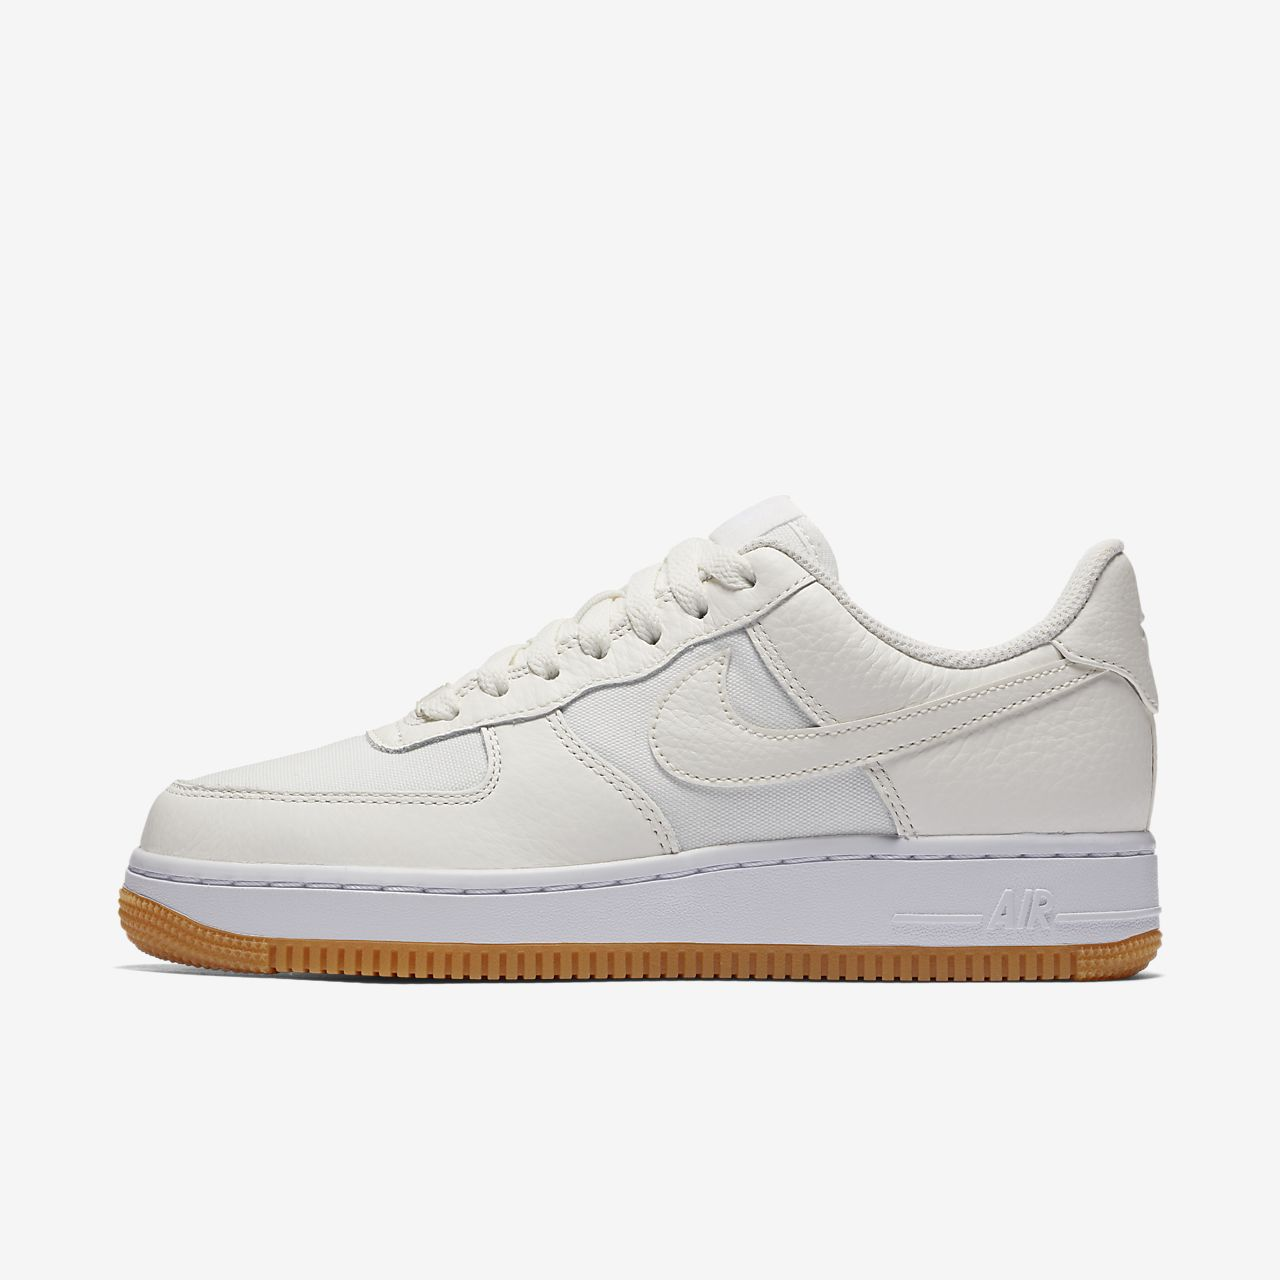 Buy nike air force 1 07 low premium > Up to 63% Discounts